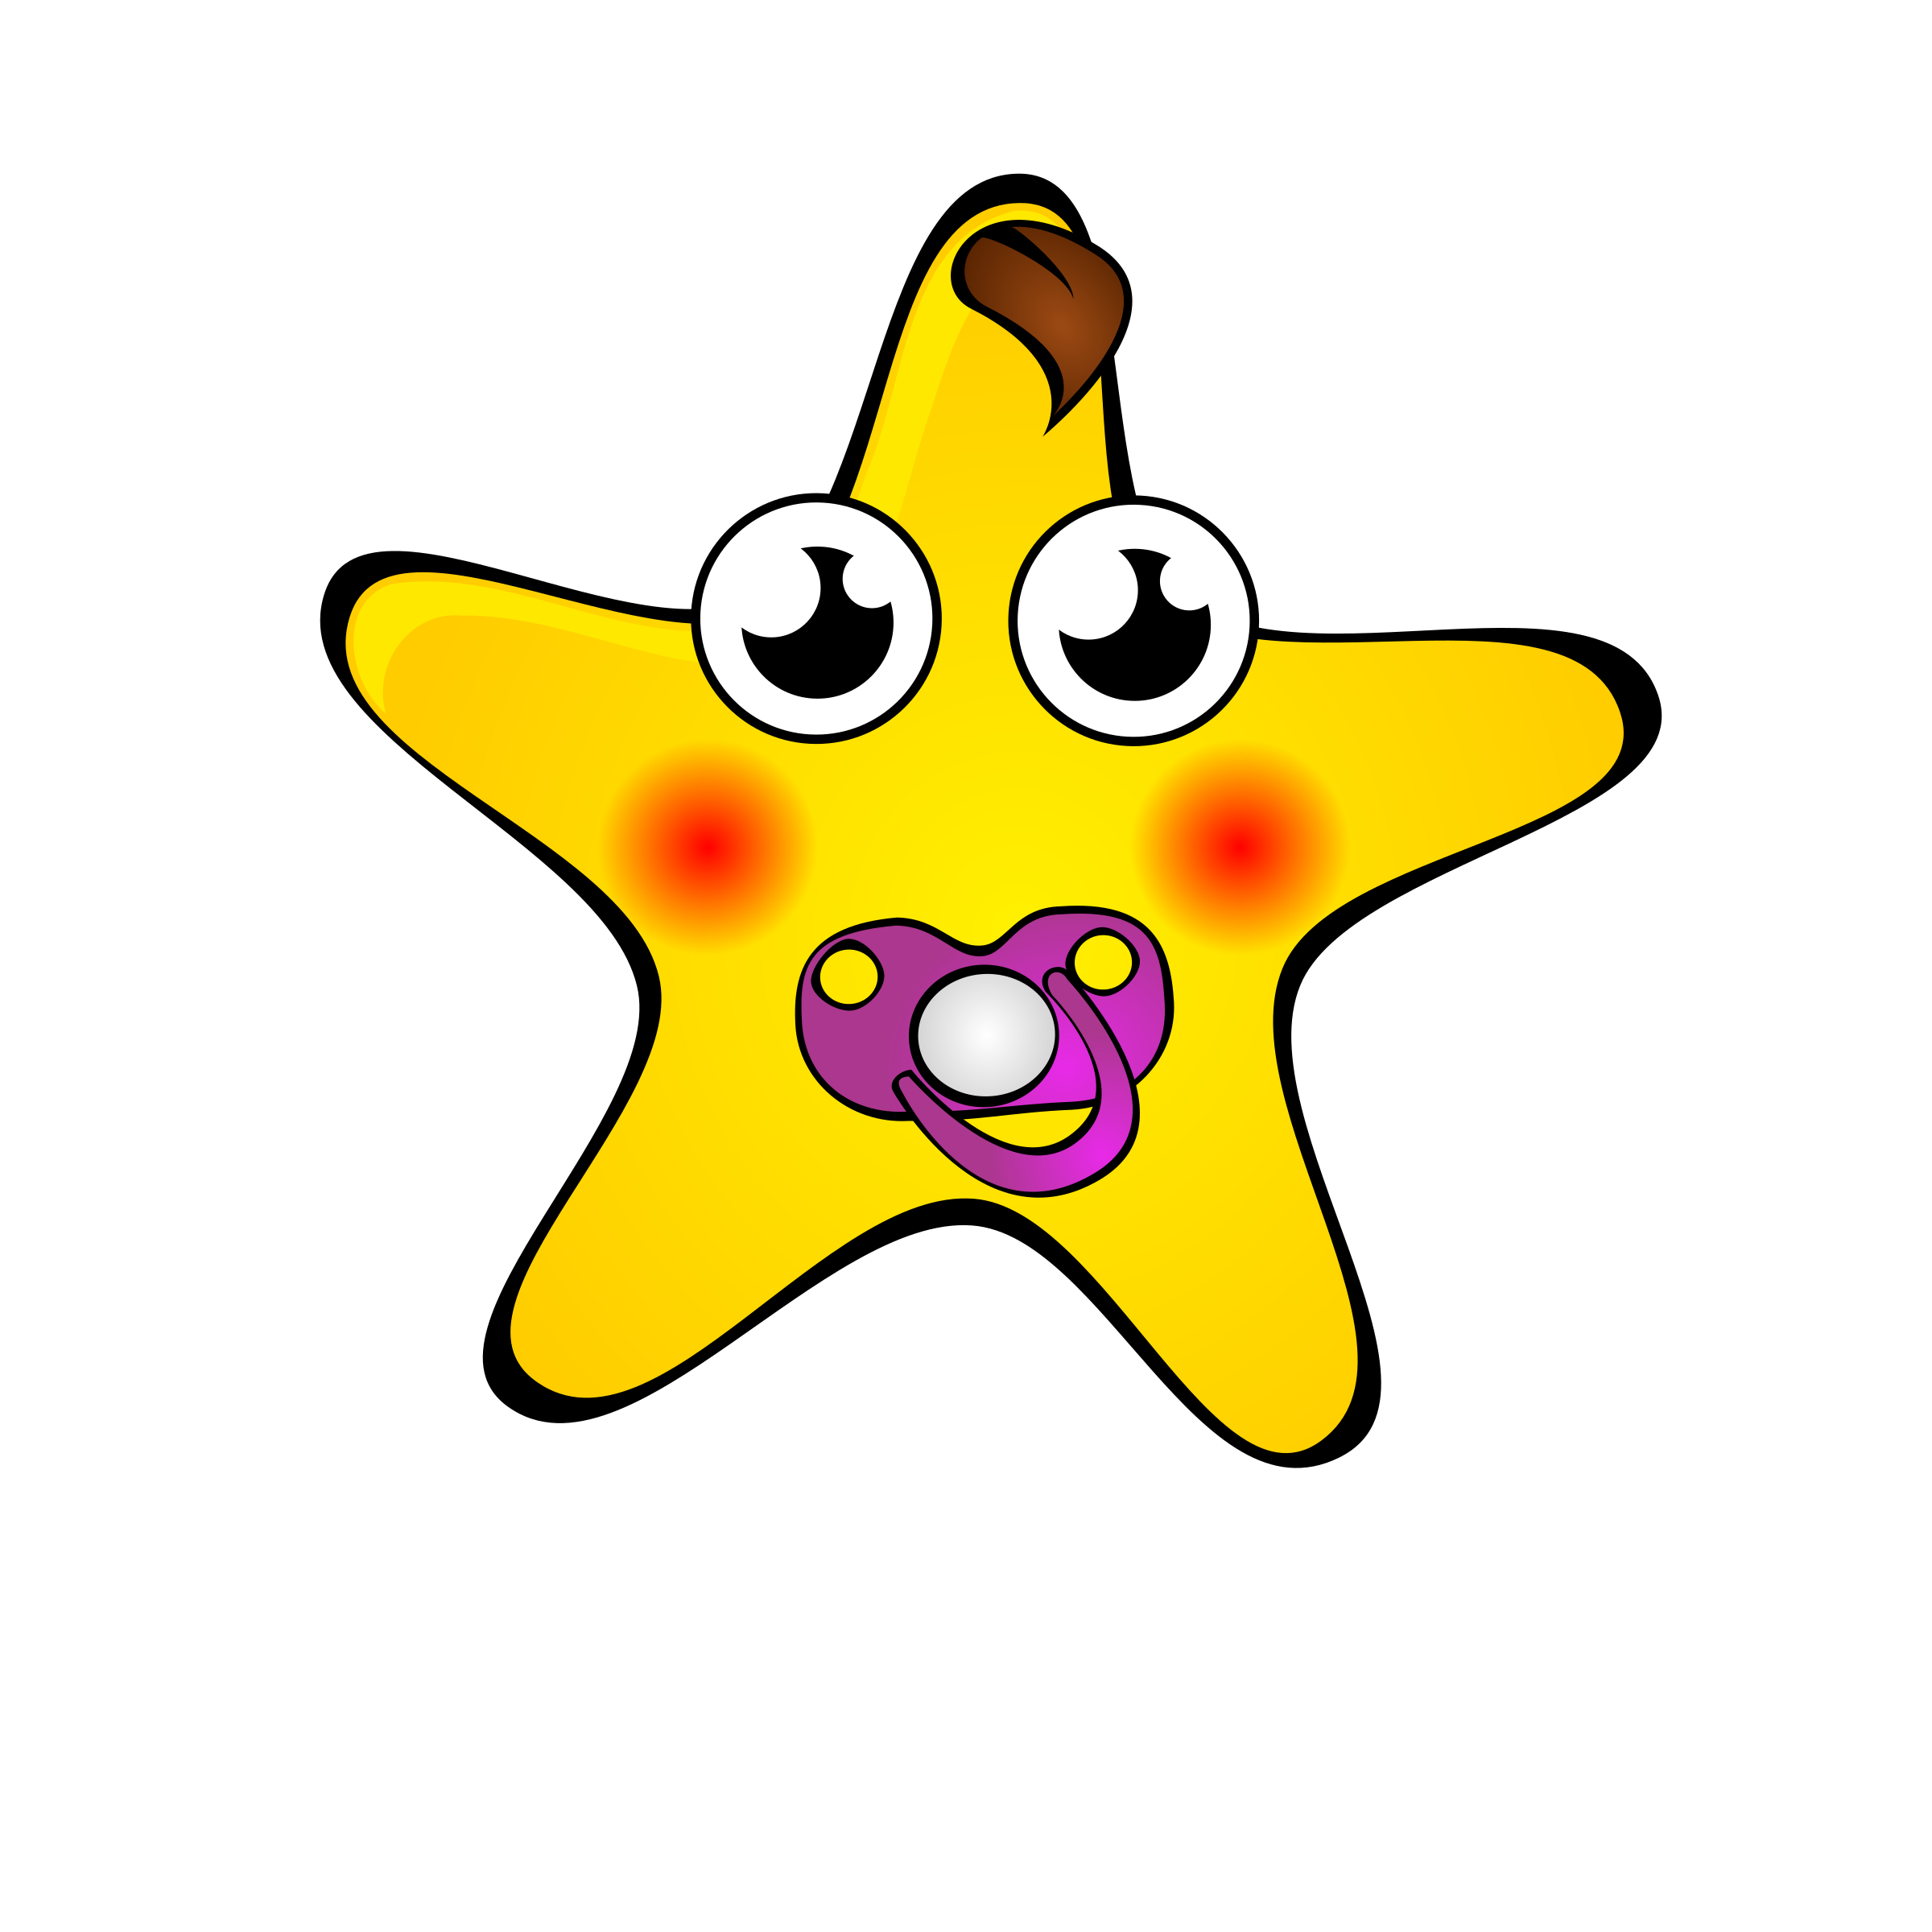 Star in sky clipart clipart library stock Clipart - Starry night: Star clipart library stock